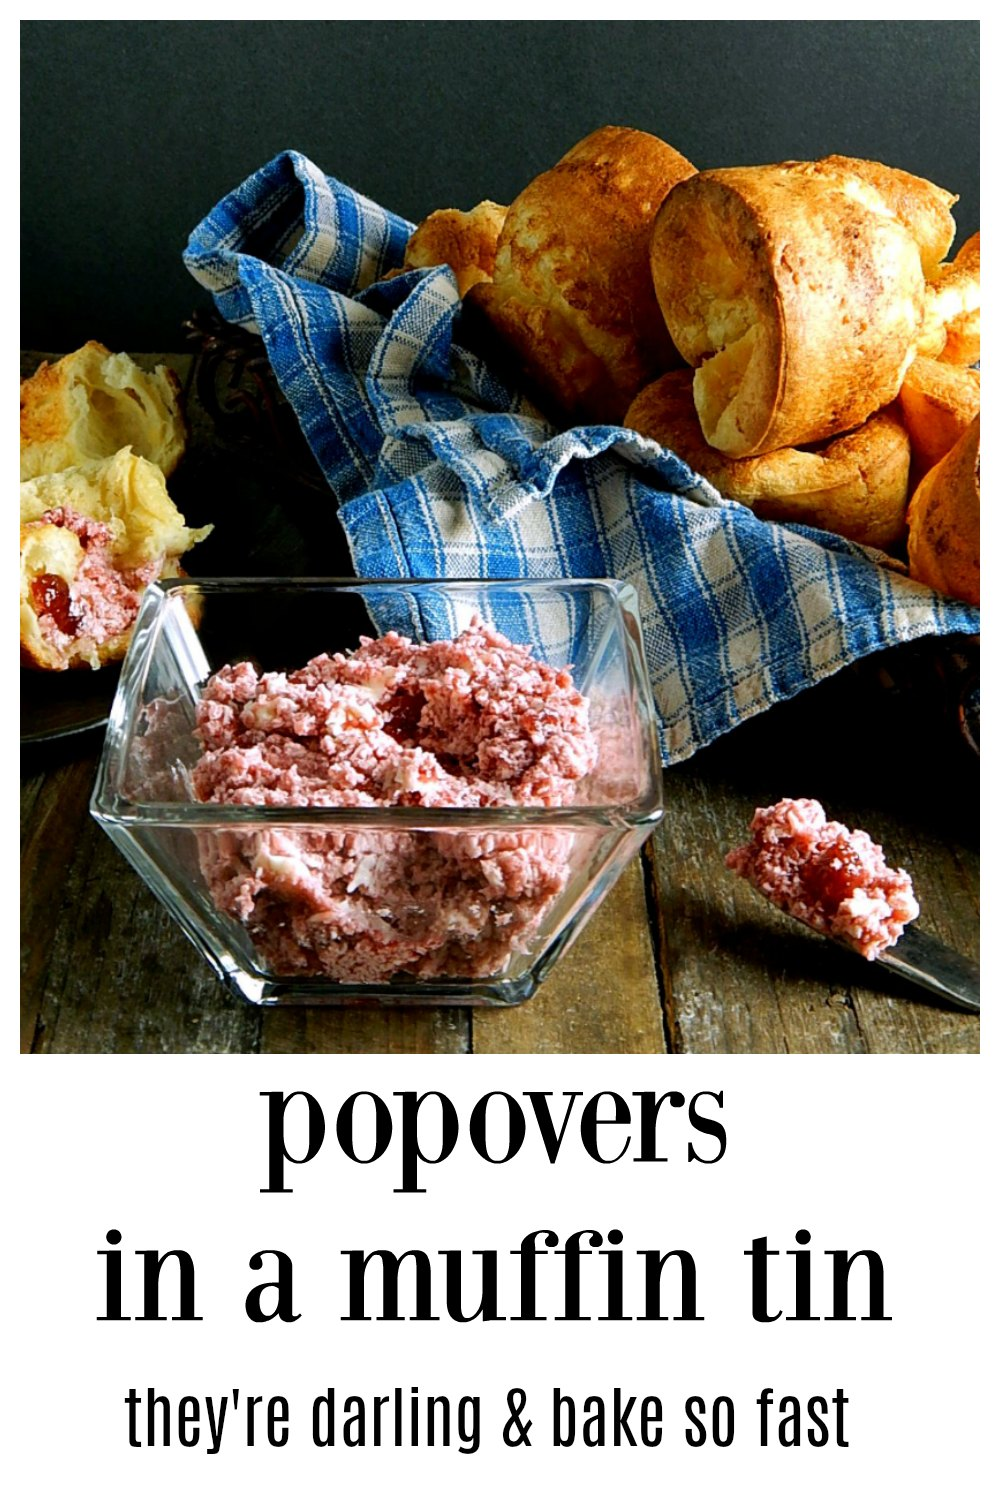 You can rock these easy Popovers in a Muffin Tin and you don't need any special equipment! They're so cute, they bake up fast and they can go sweet or savory. Serve instead of biscuits or bread with dinner or with Jam or Strawberry Butter for brunch. #MuffinTinPopovers #PopoversInAMuffinTin #Popover